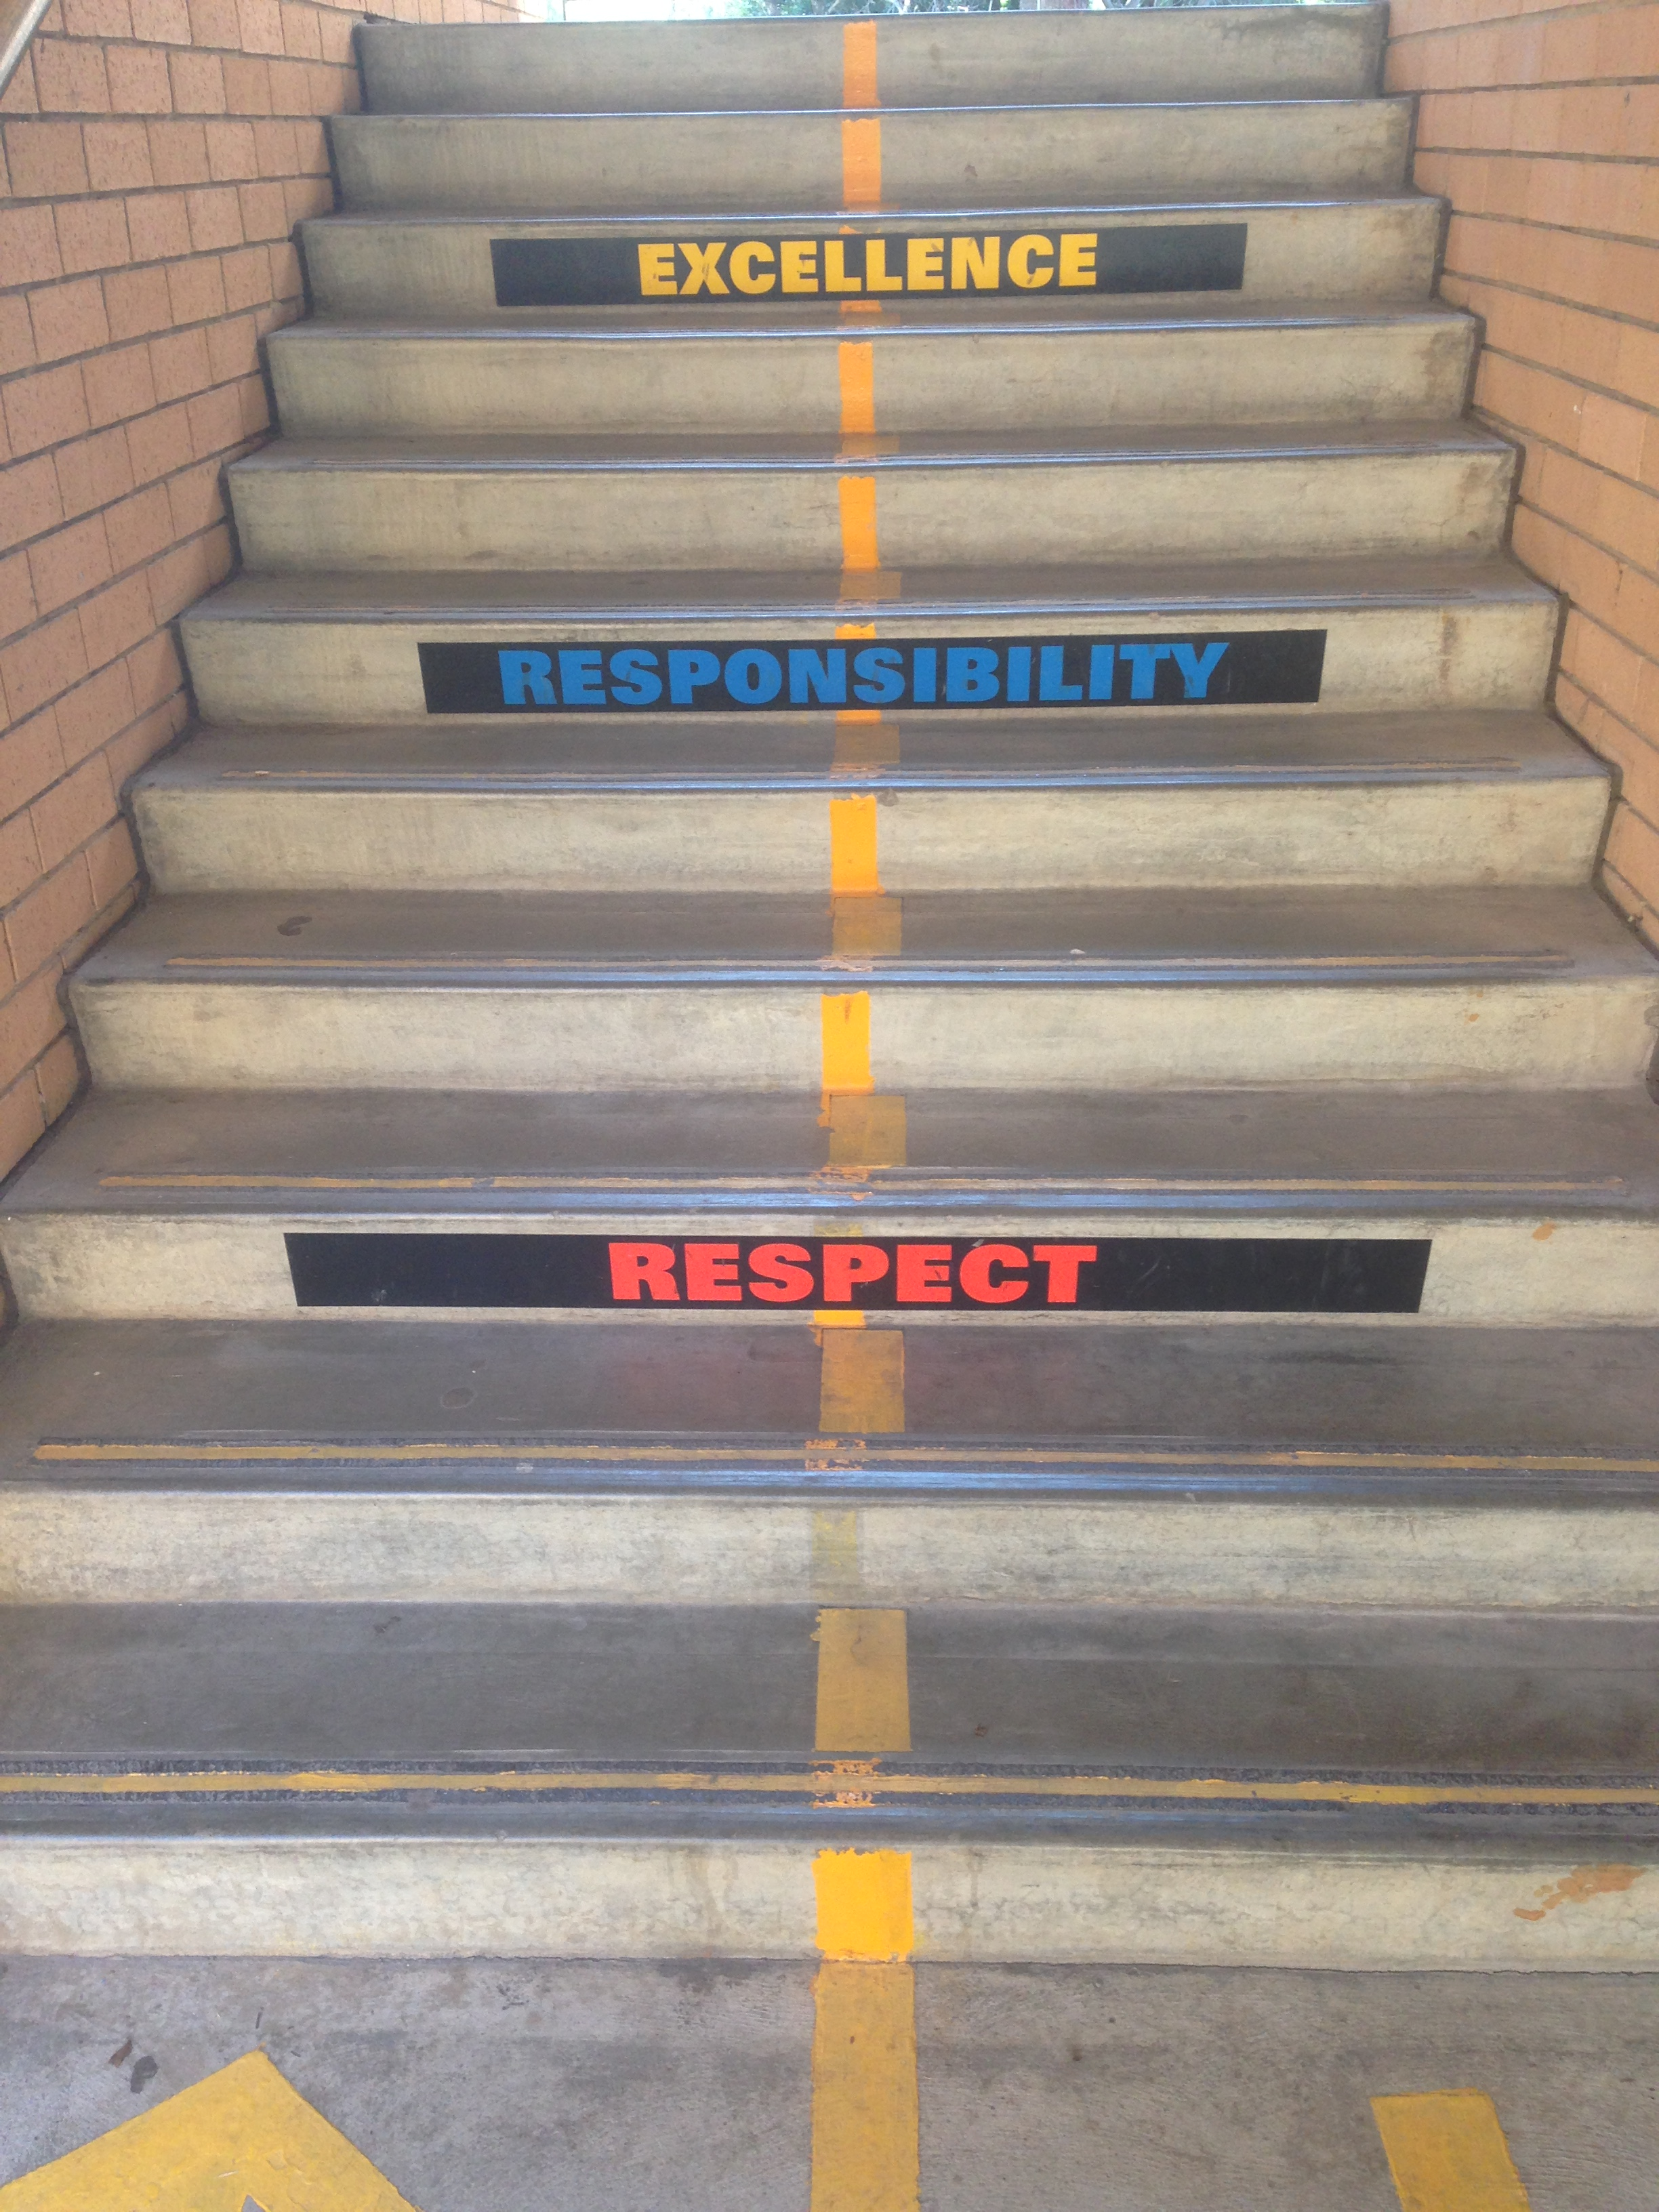 Respect, responsibility and excellence